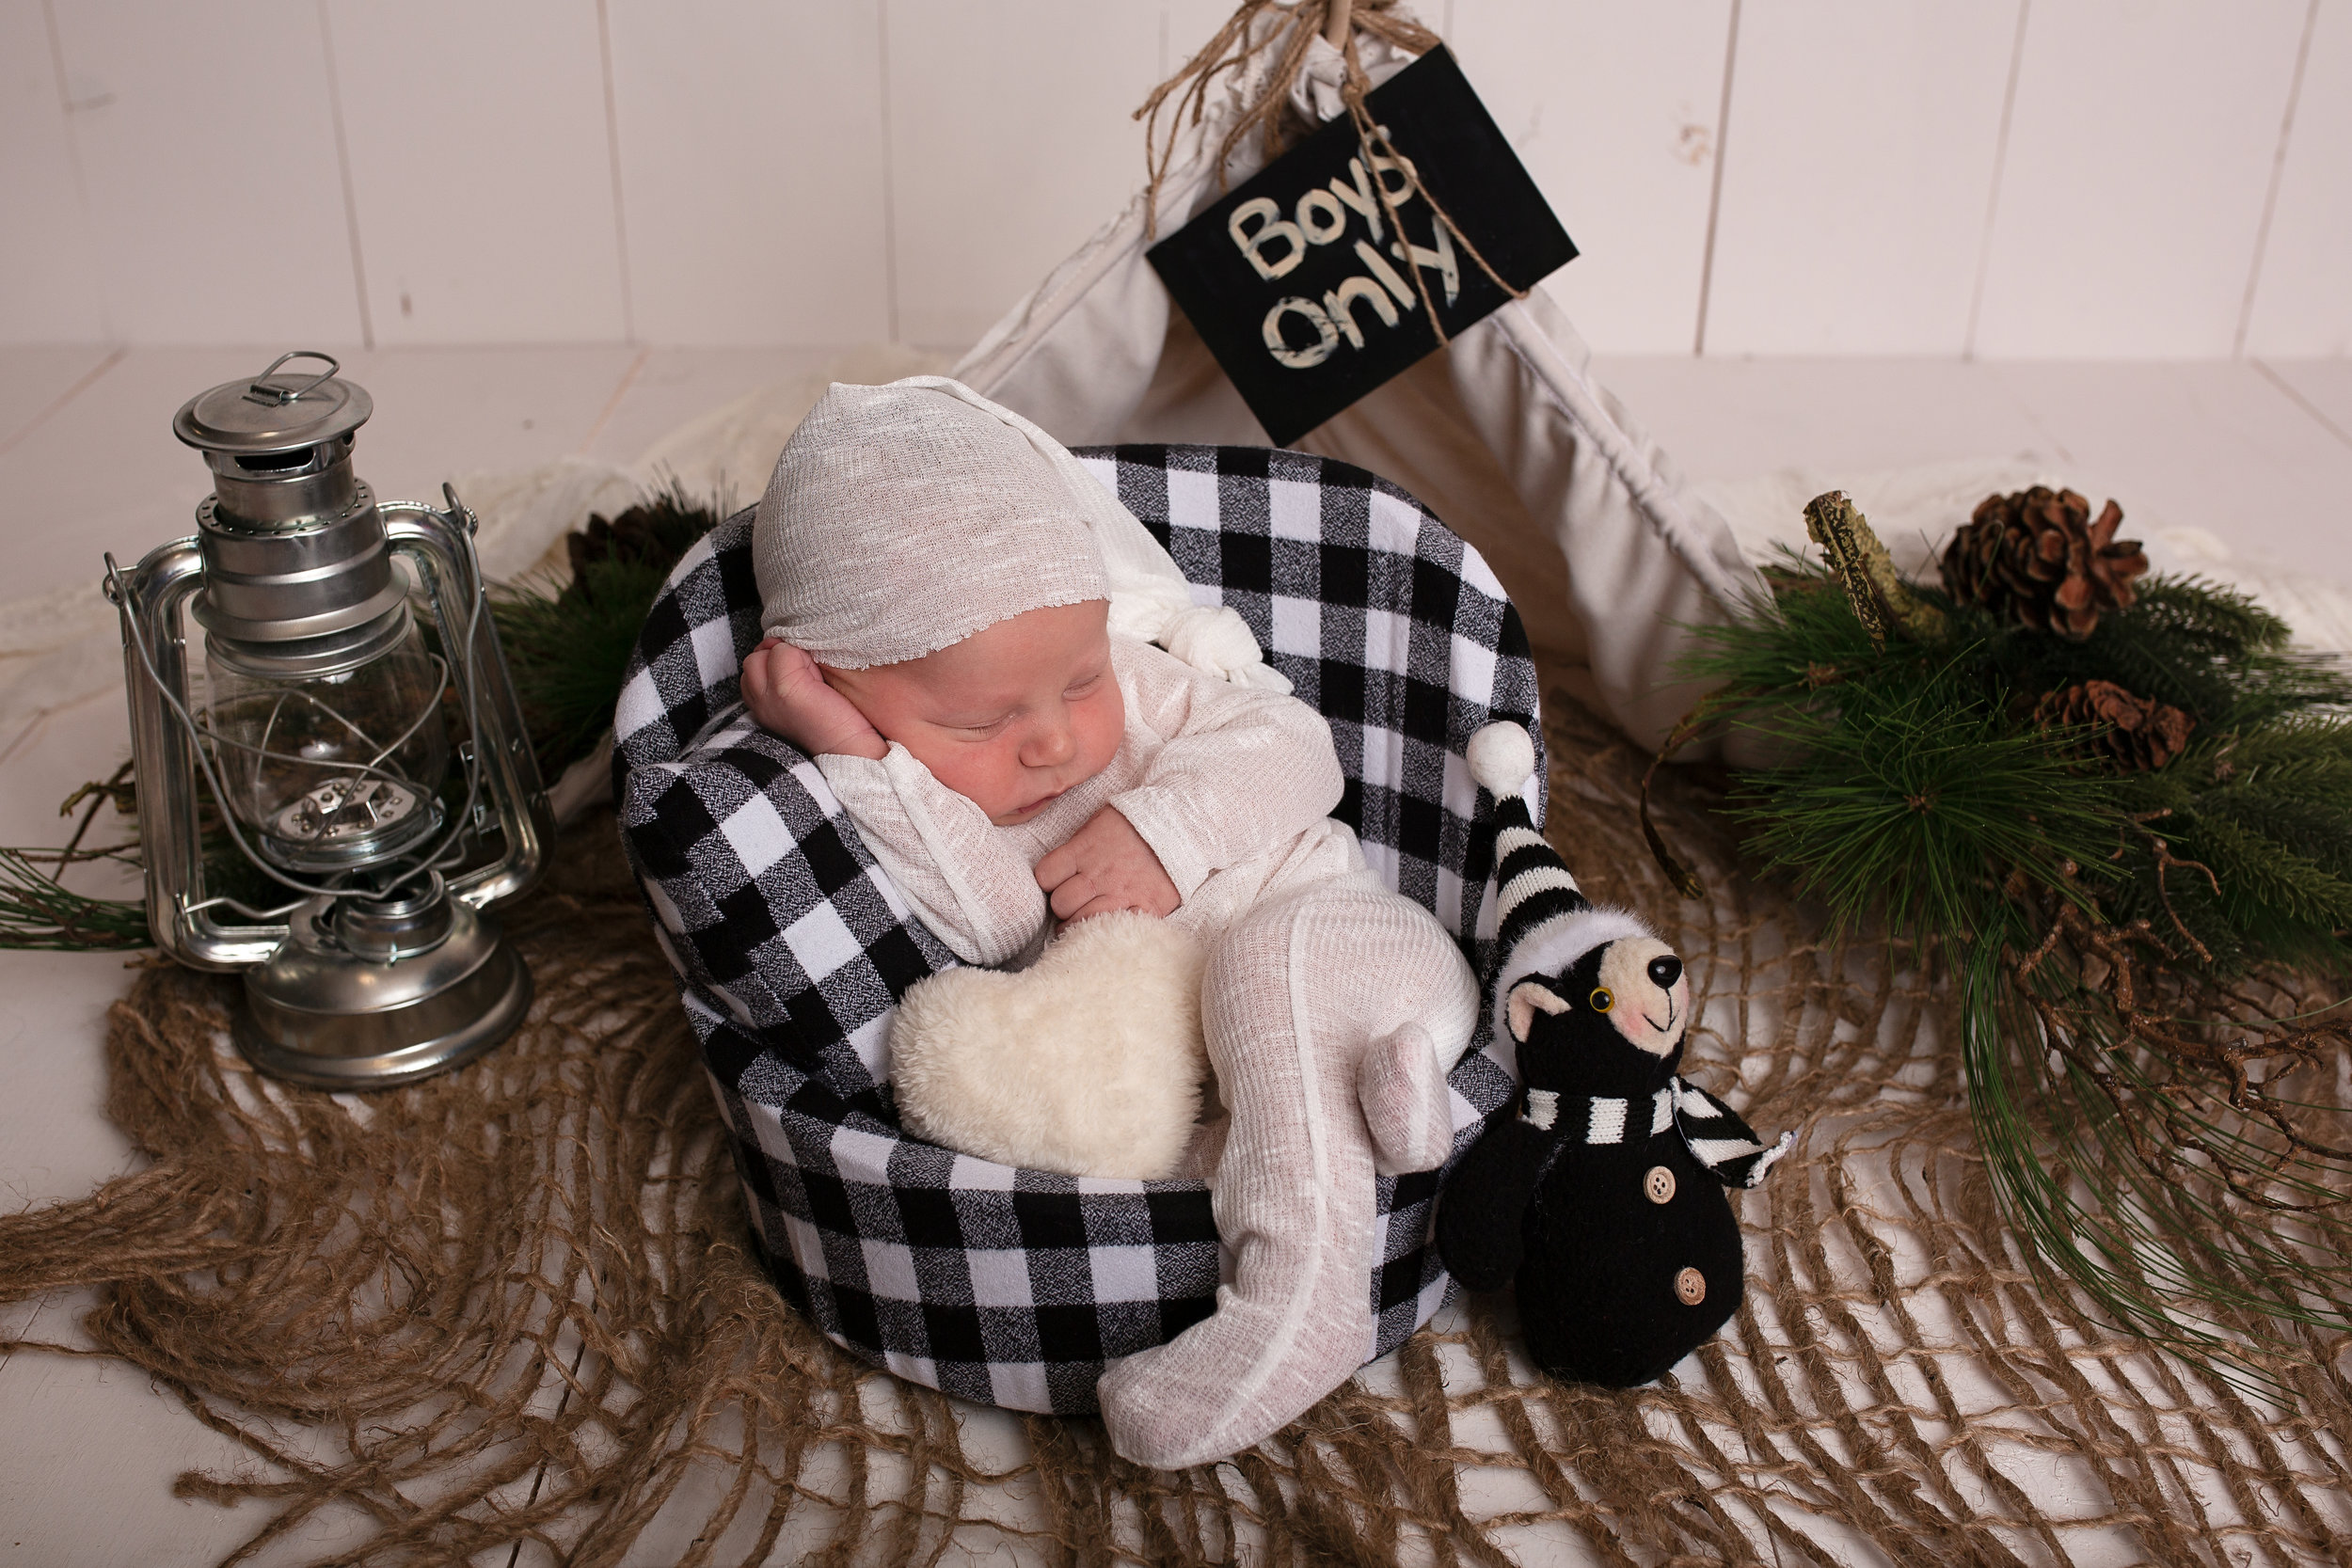 18_11_04 Melody Foster Newborn Session - Pryson43.jpg